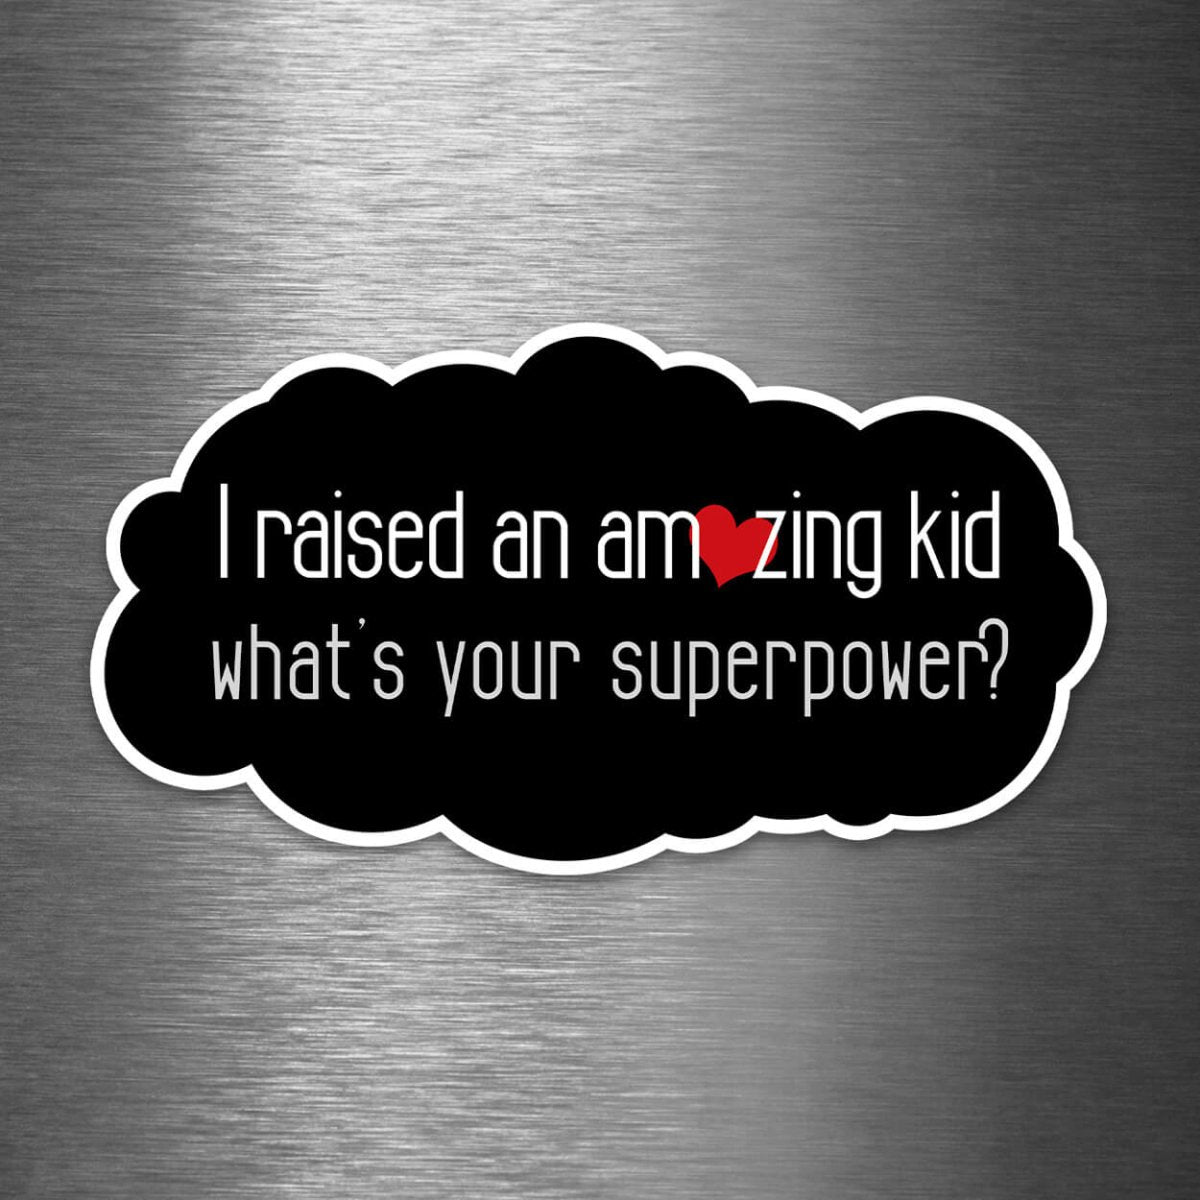 I Raised an Amazing Kid - What's Your Superpower? - Vinyl Sticker - Dan Pearce Sticker Shop